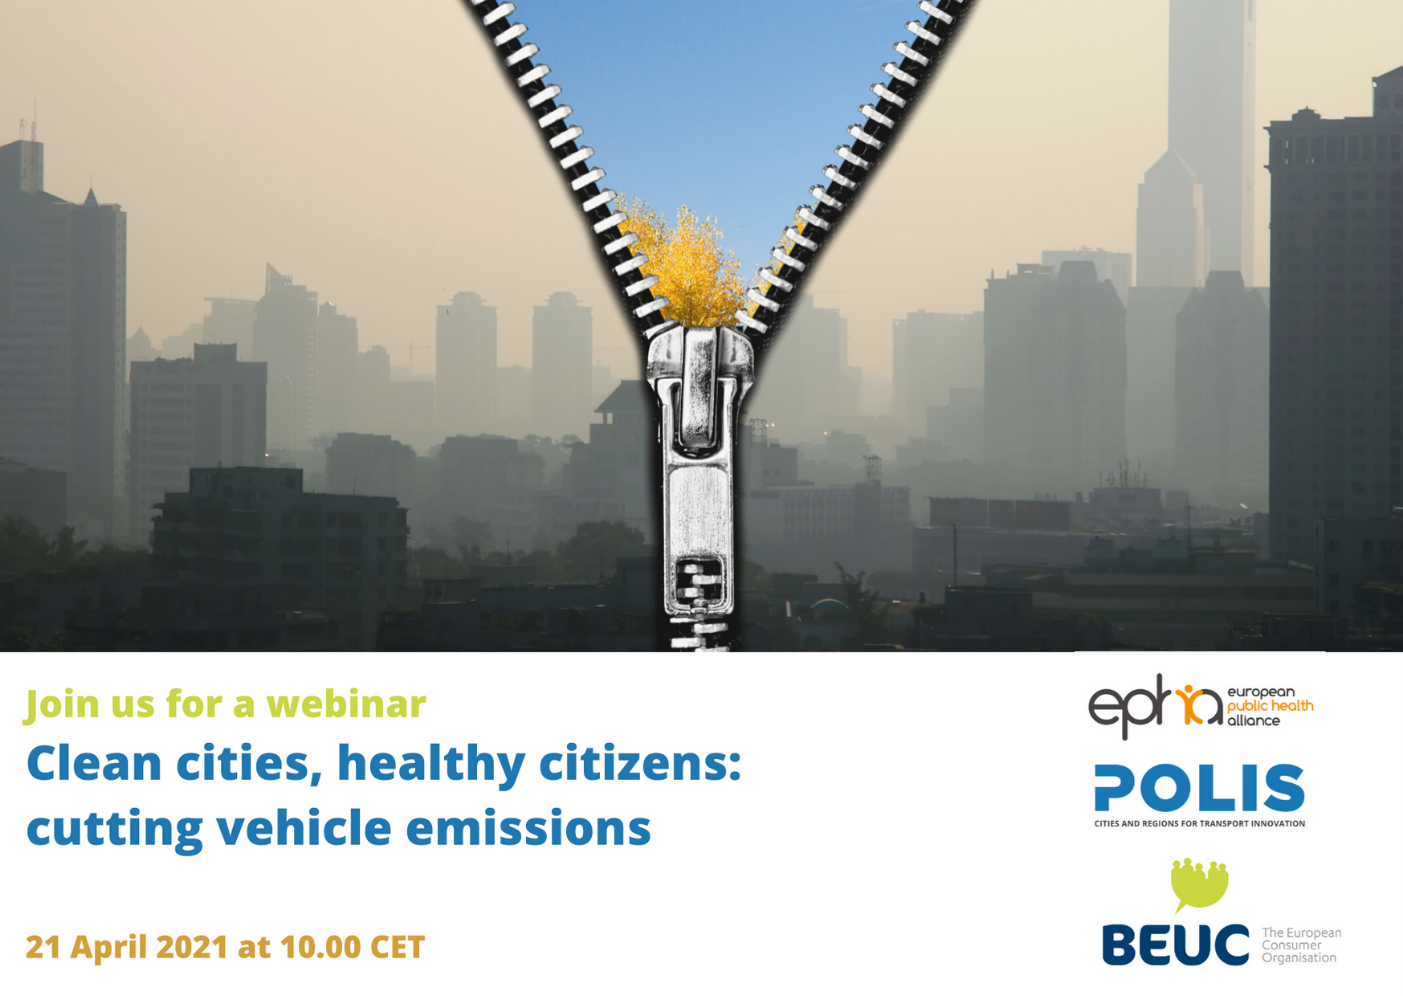 Clean cities, healthy citizens: cutting vehicle emissions